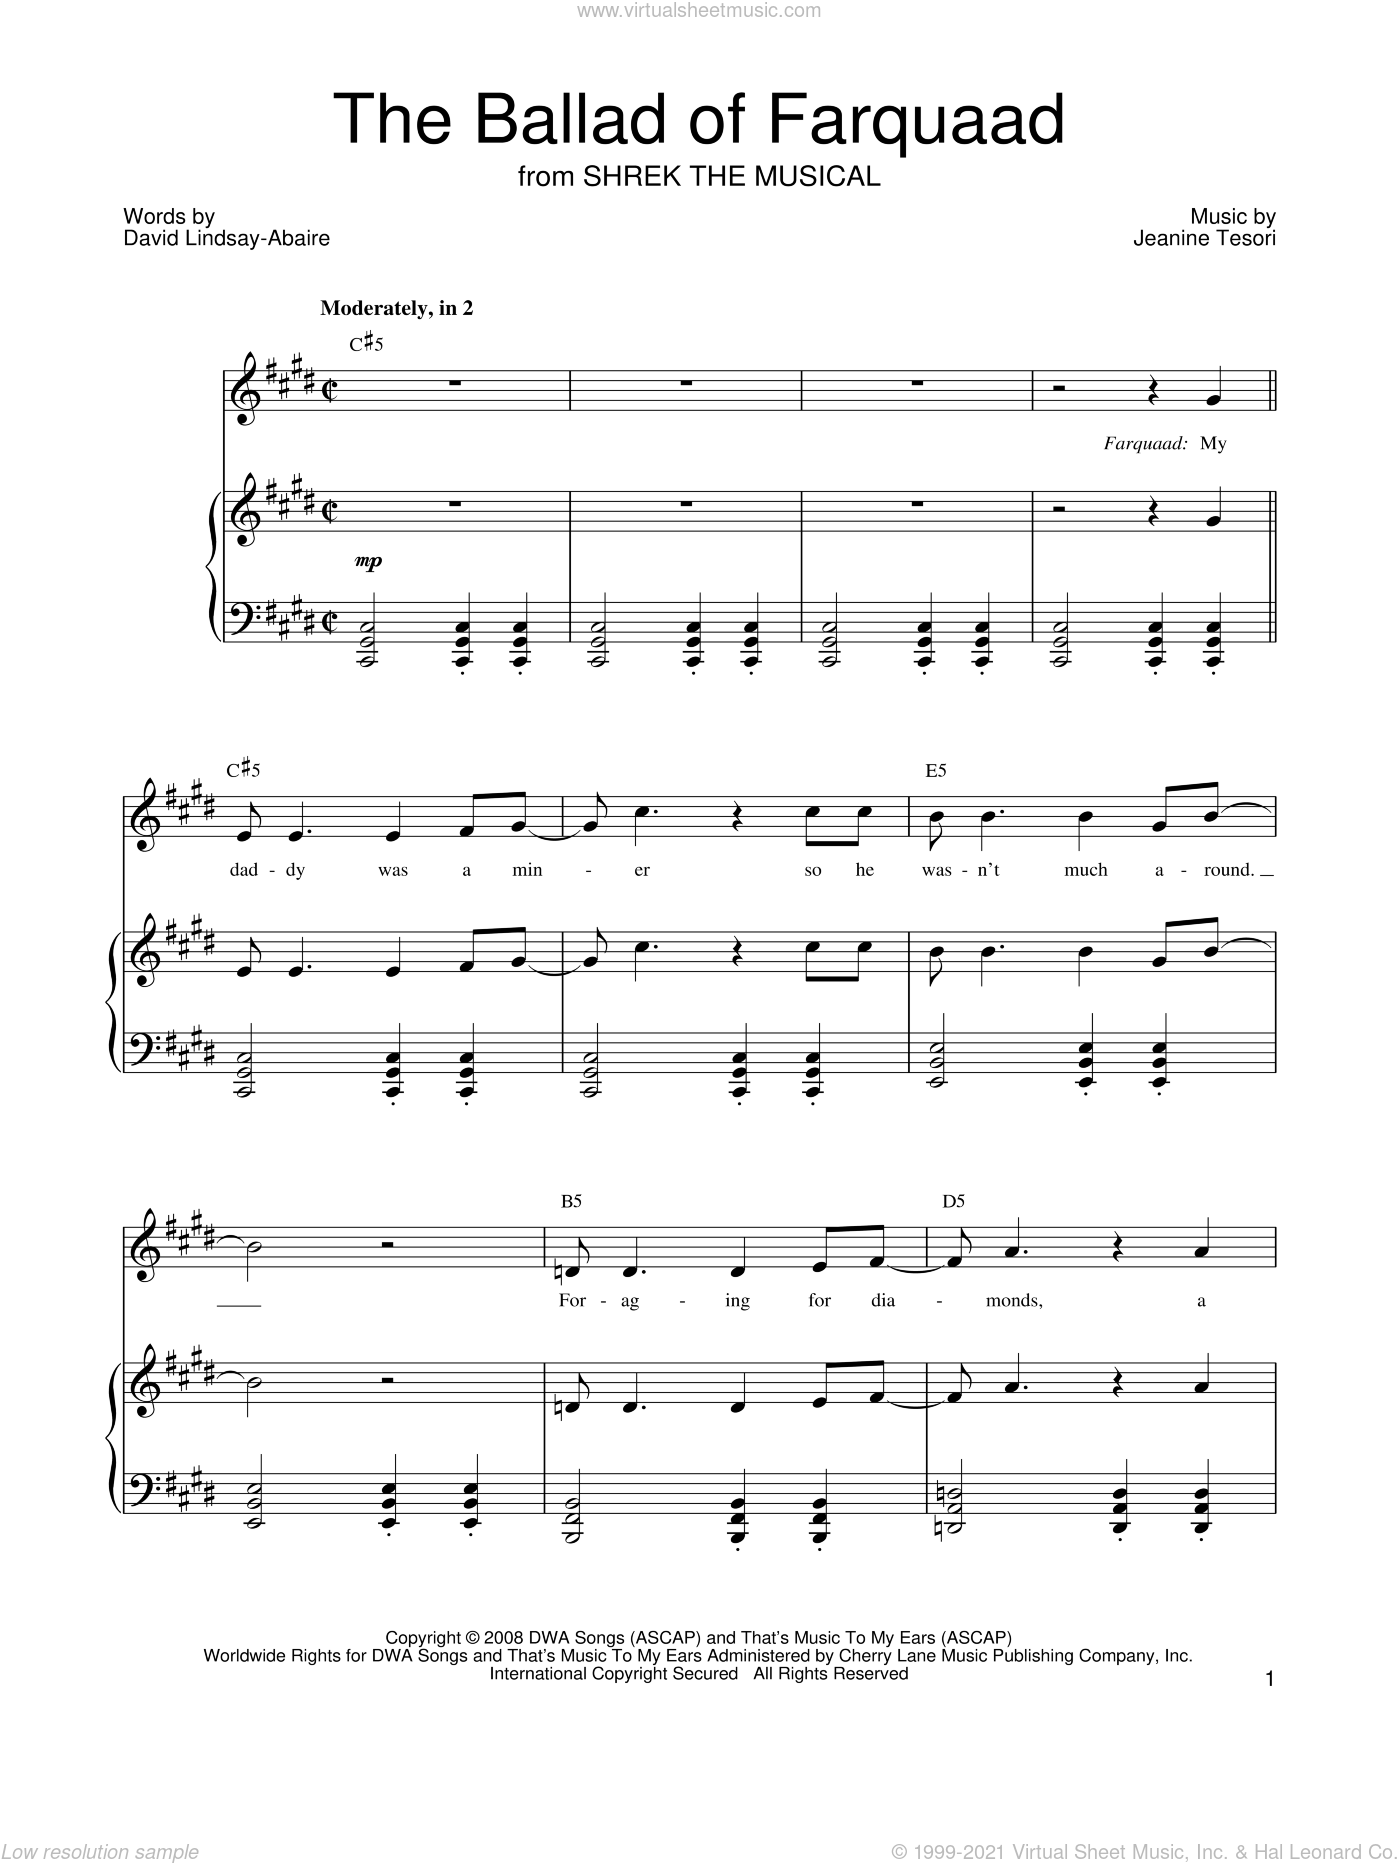 The Ballad of Farquaad sheet music for voice, piano or guitar by Shrek The Musical, David Lindsay-Abaire and Jeanine Tesori, intermediate skill level